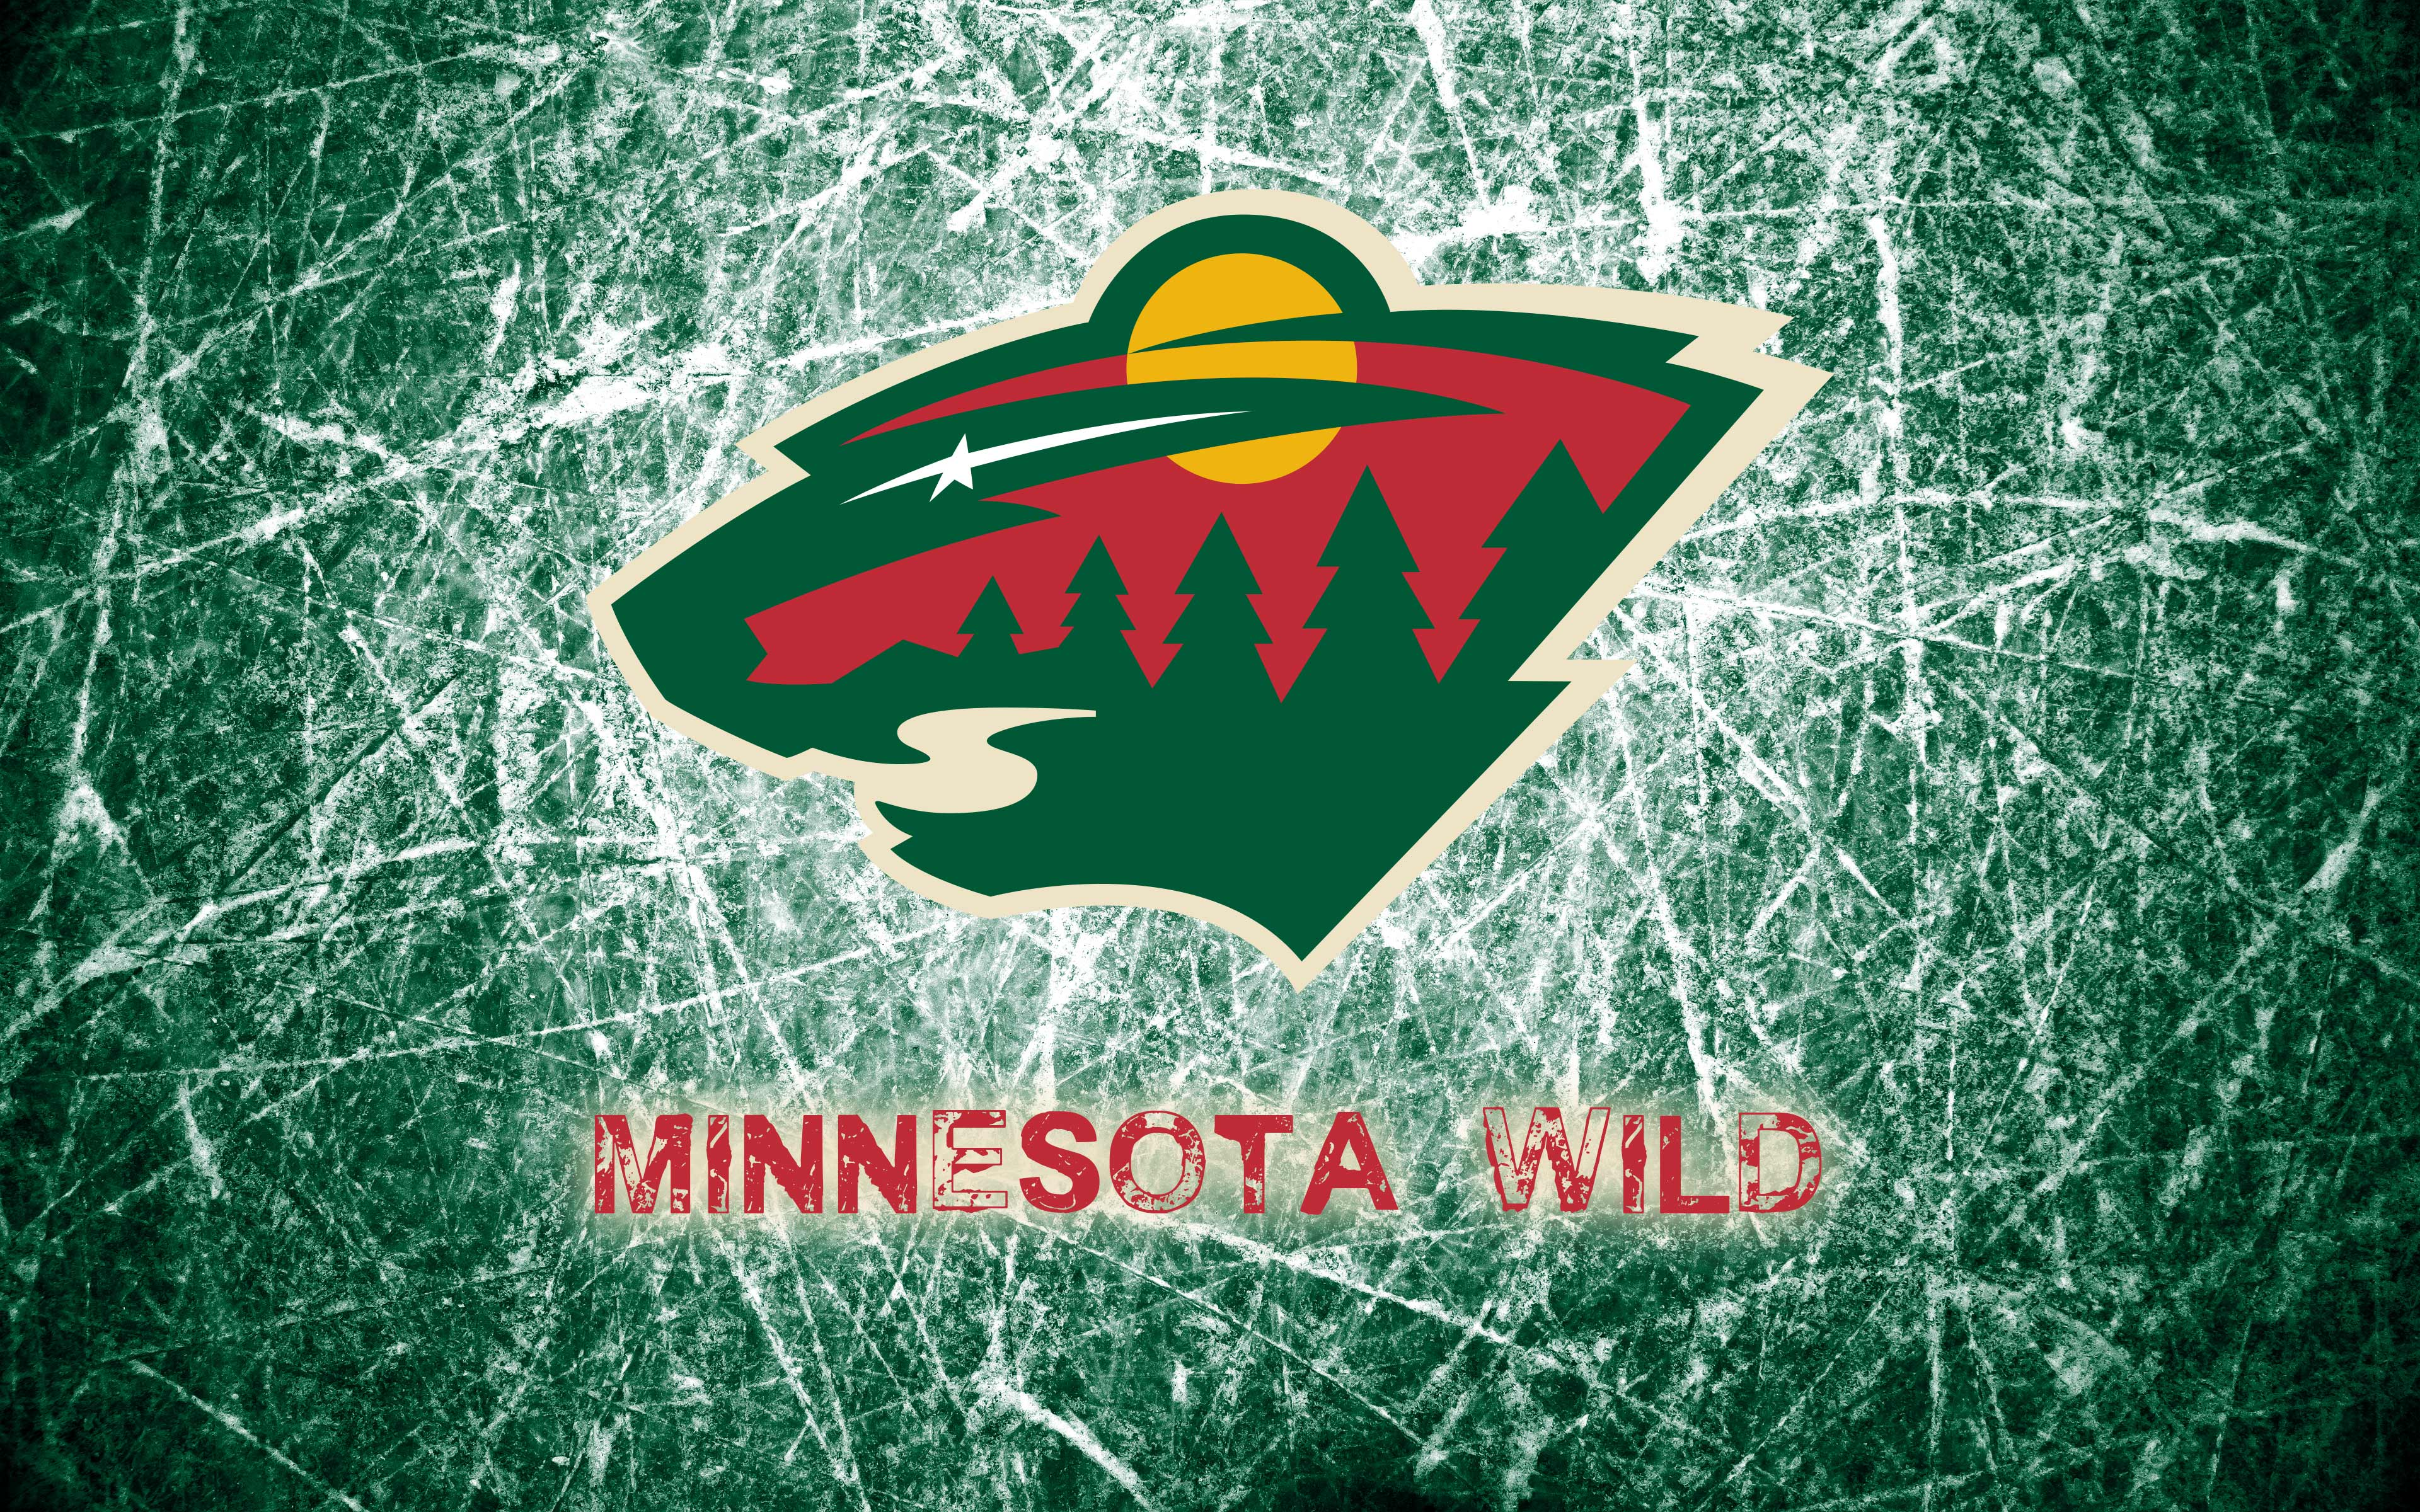 minnesota wild wallpaper full hd pictures